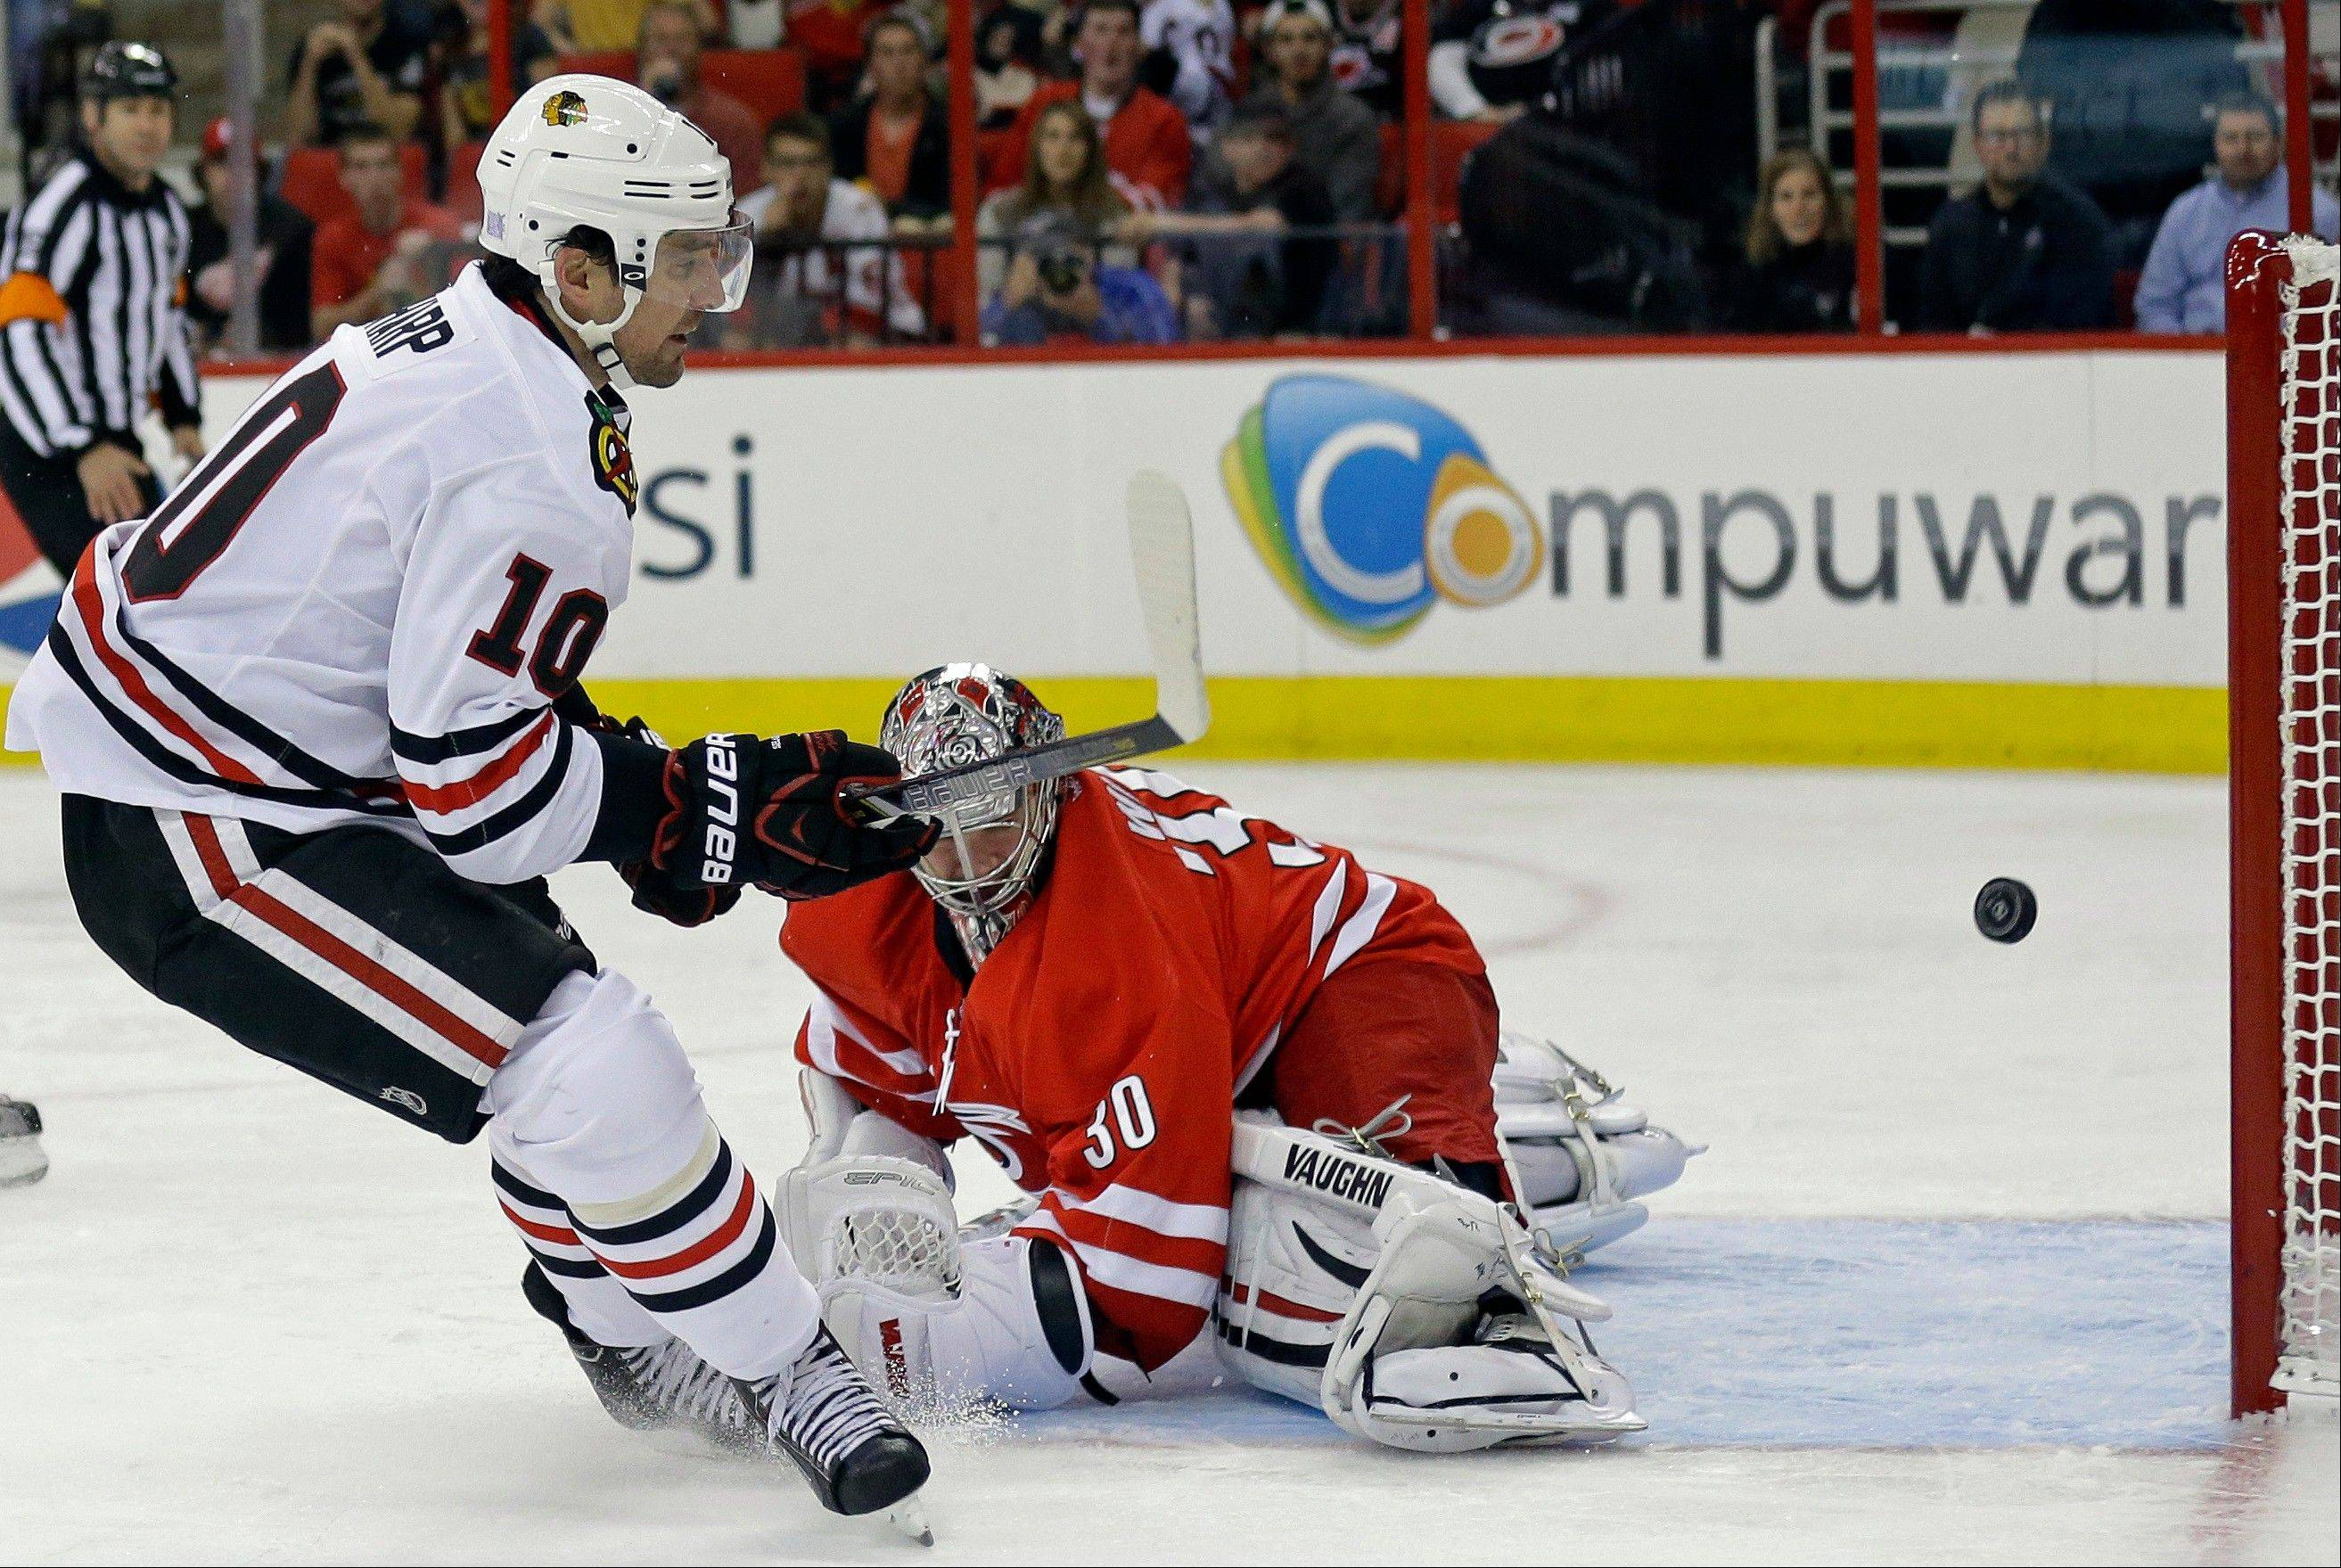 Very special night for Blackhawks' Sharp